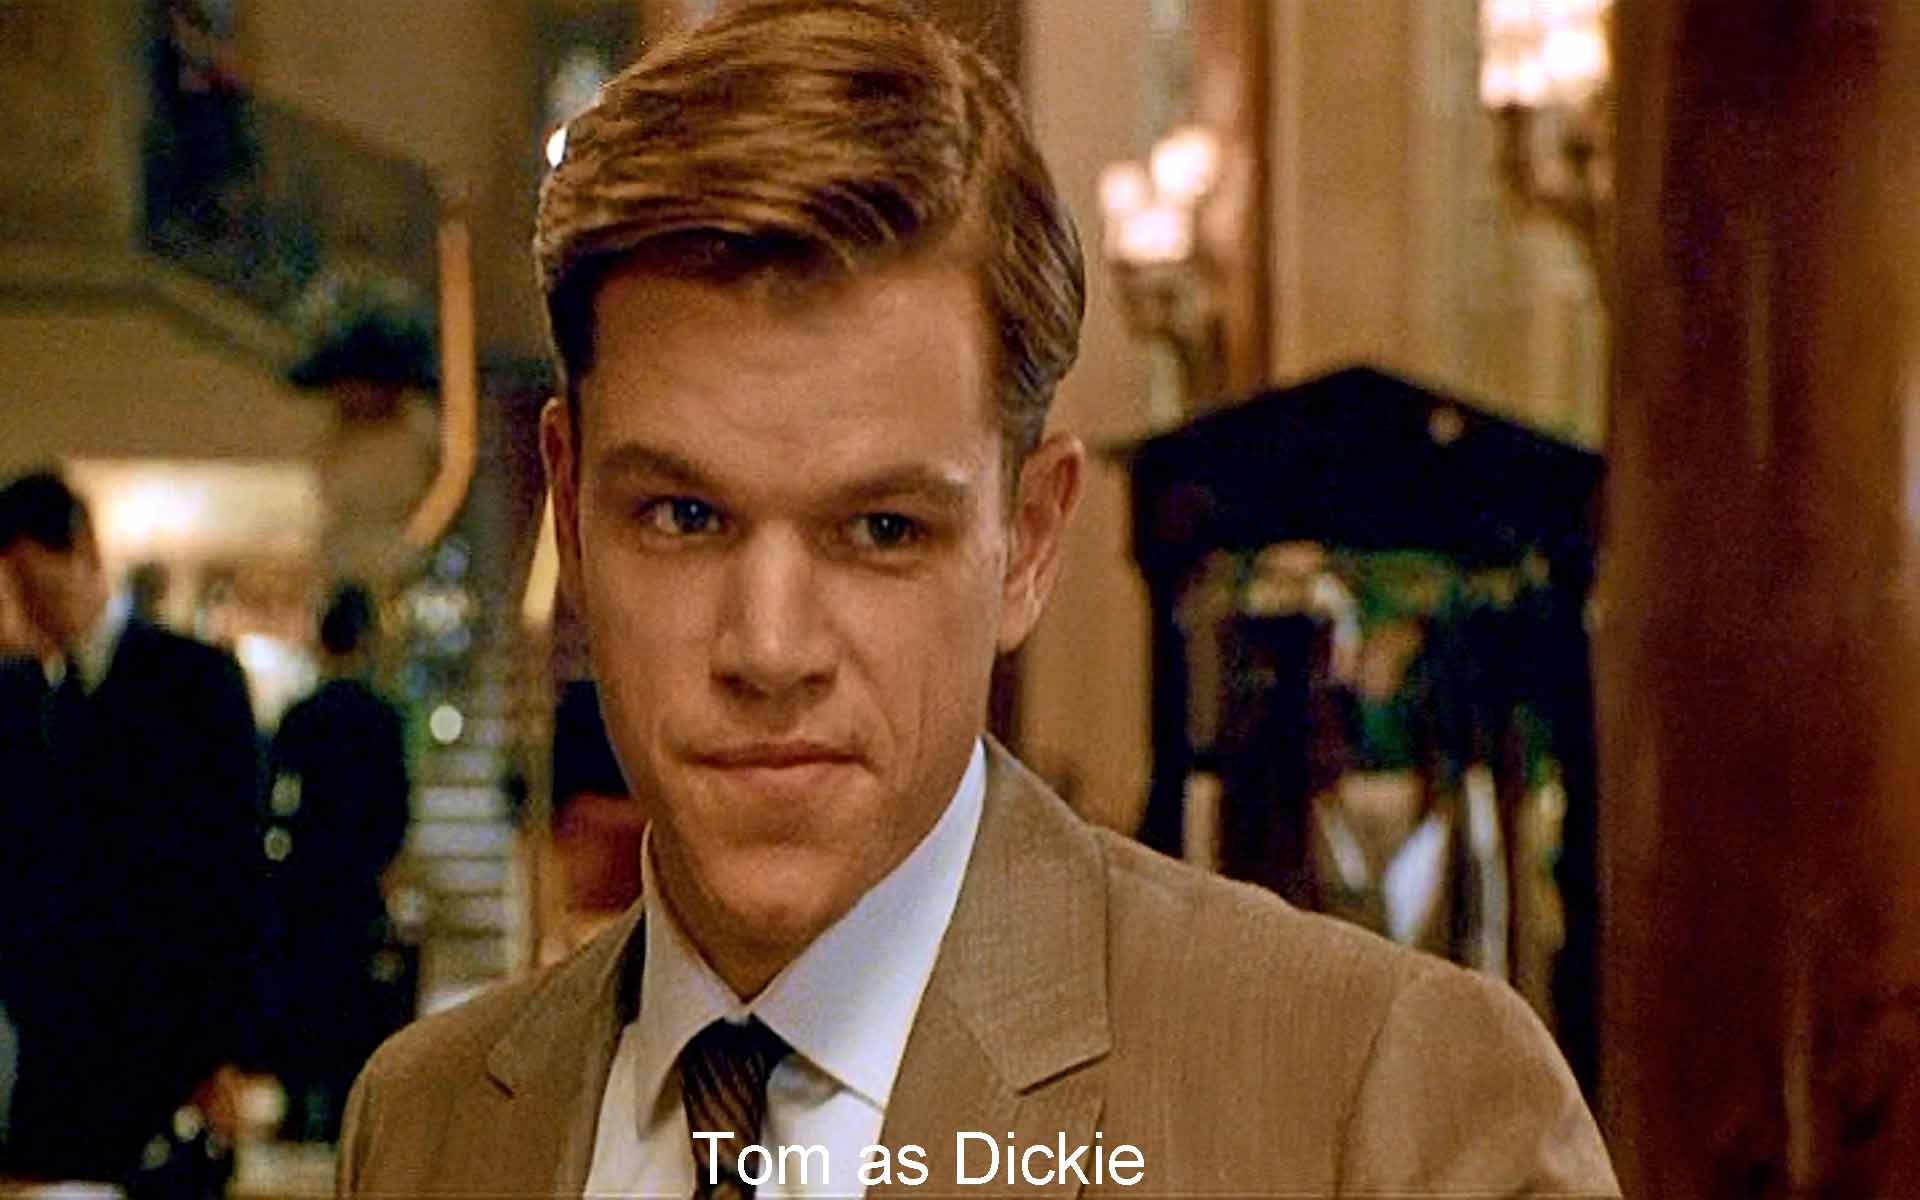 Tom as Dickie